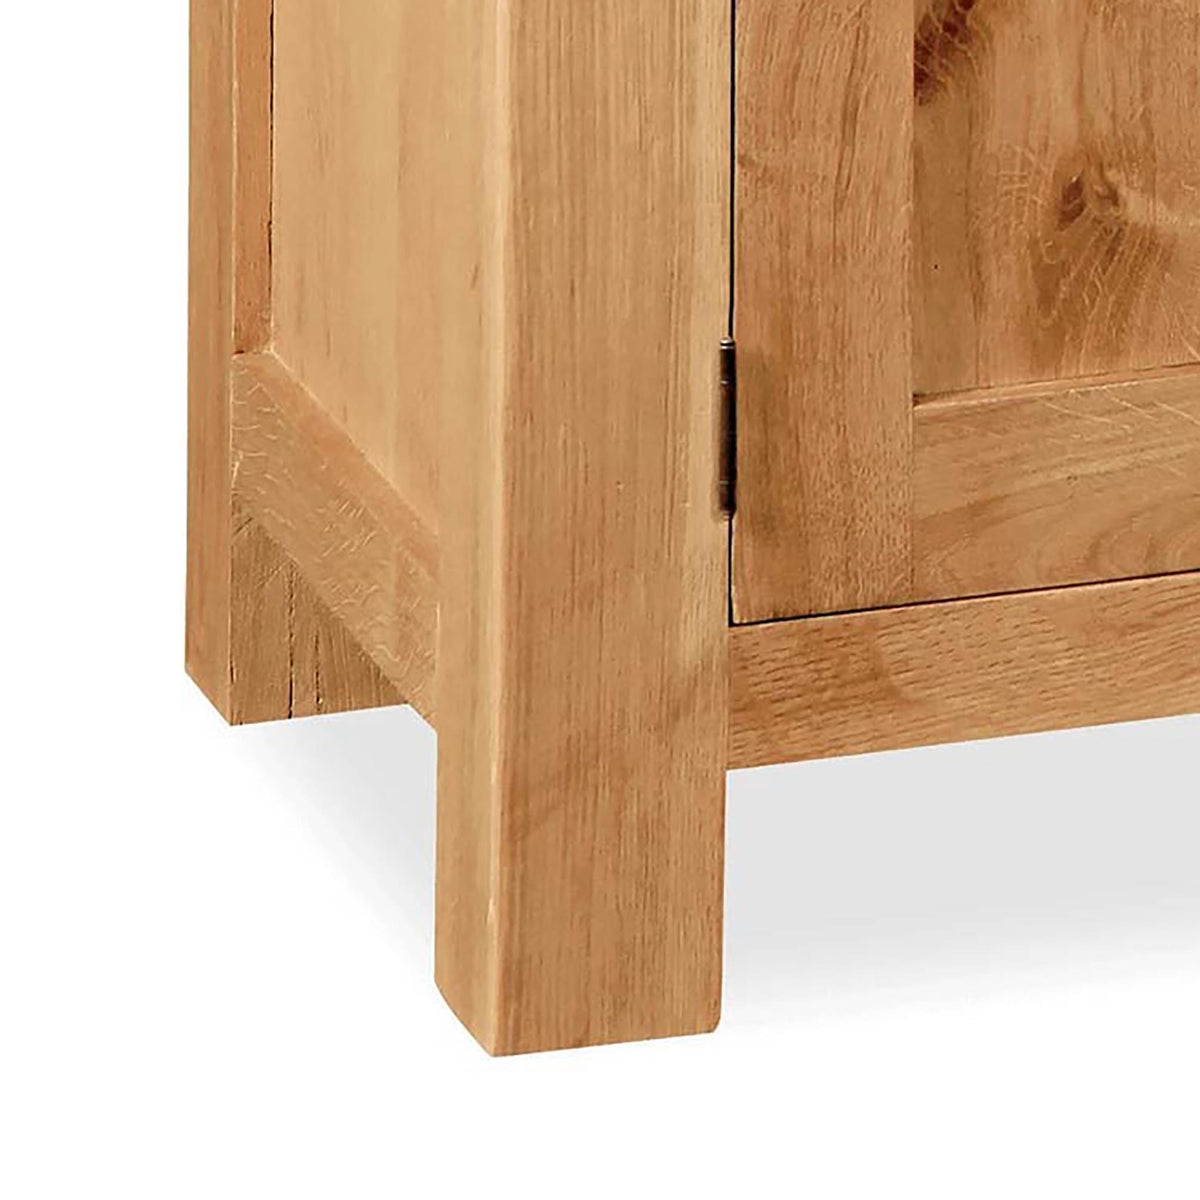 Sidmouth Oak 120cm TV Stand - Close Up of Legs